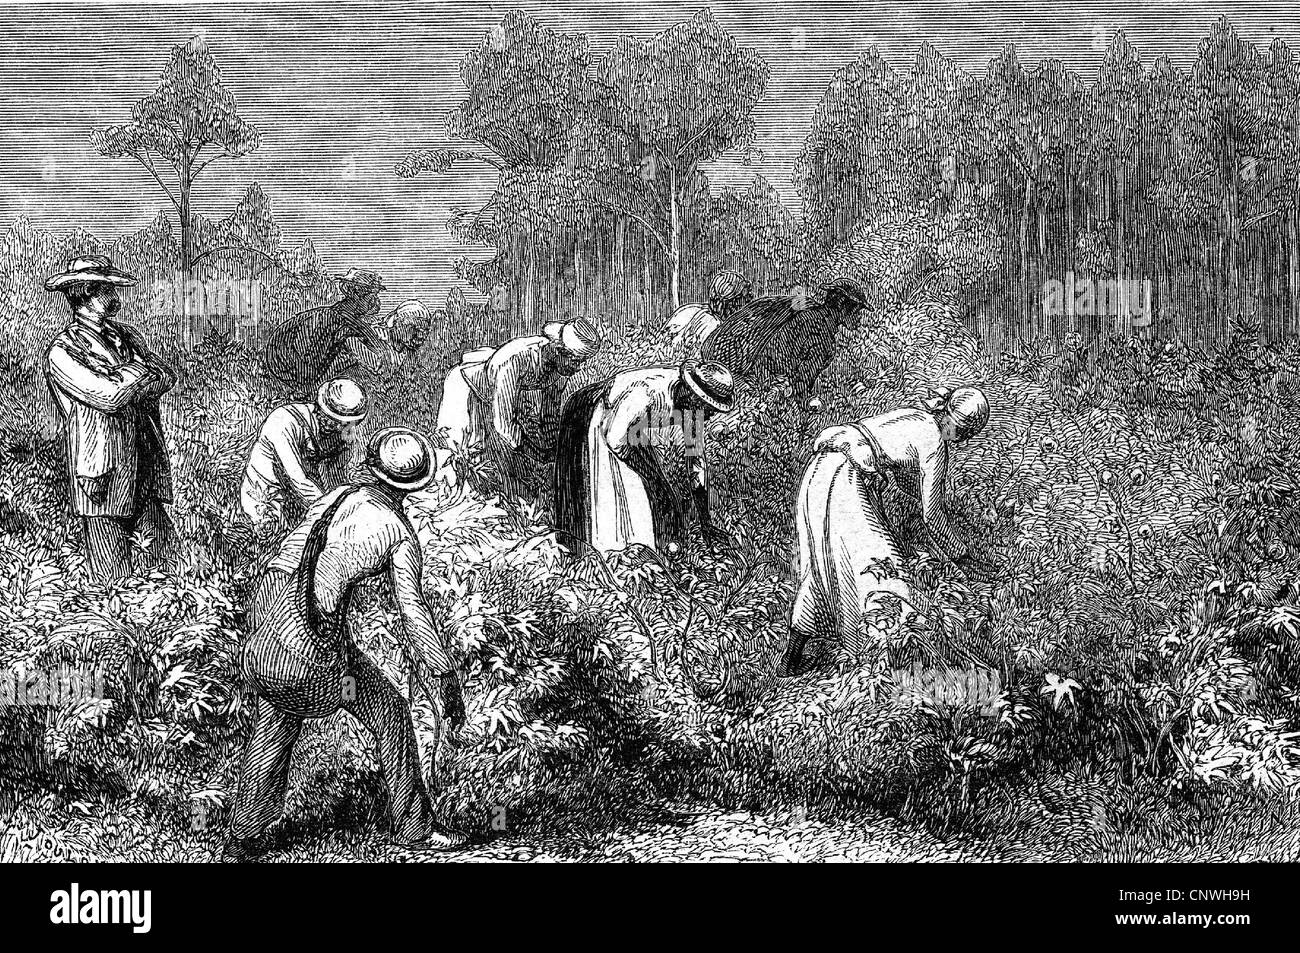 the nature and impact of slavery throughout colonial and antebellum america Slavery in early america: characteristics  the characteristics of slavery in early colonial america were  slavery in early america: characteristics & opposition.